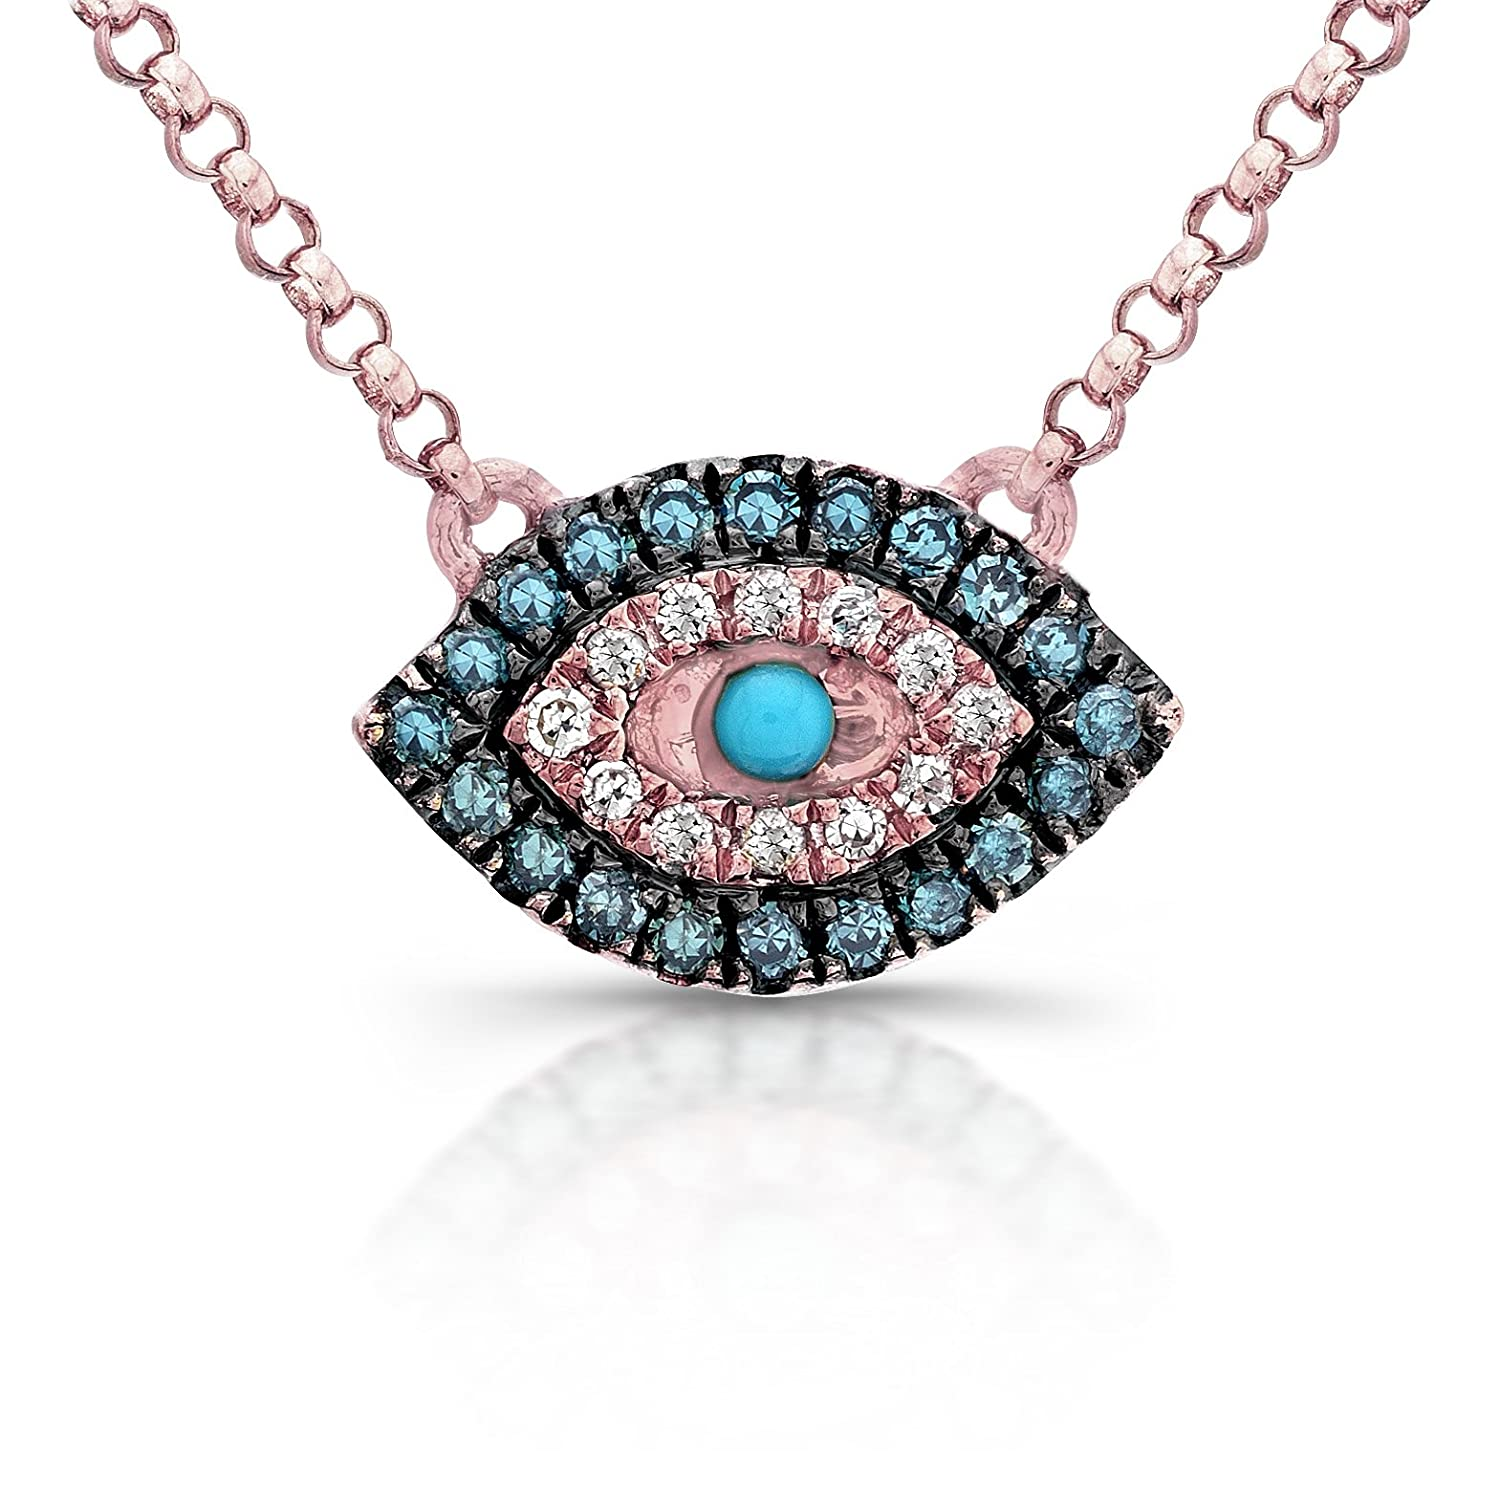 greed mix necklace john metal duo image strength crystal blue eye white evil swarovski women